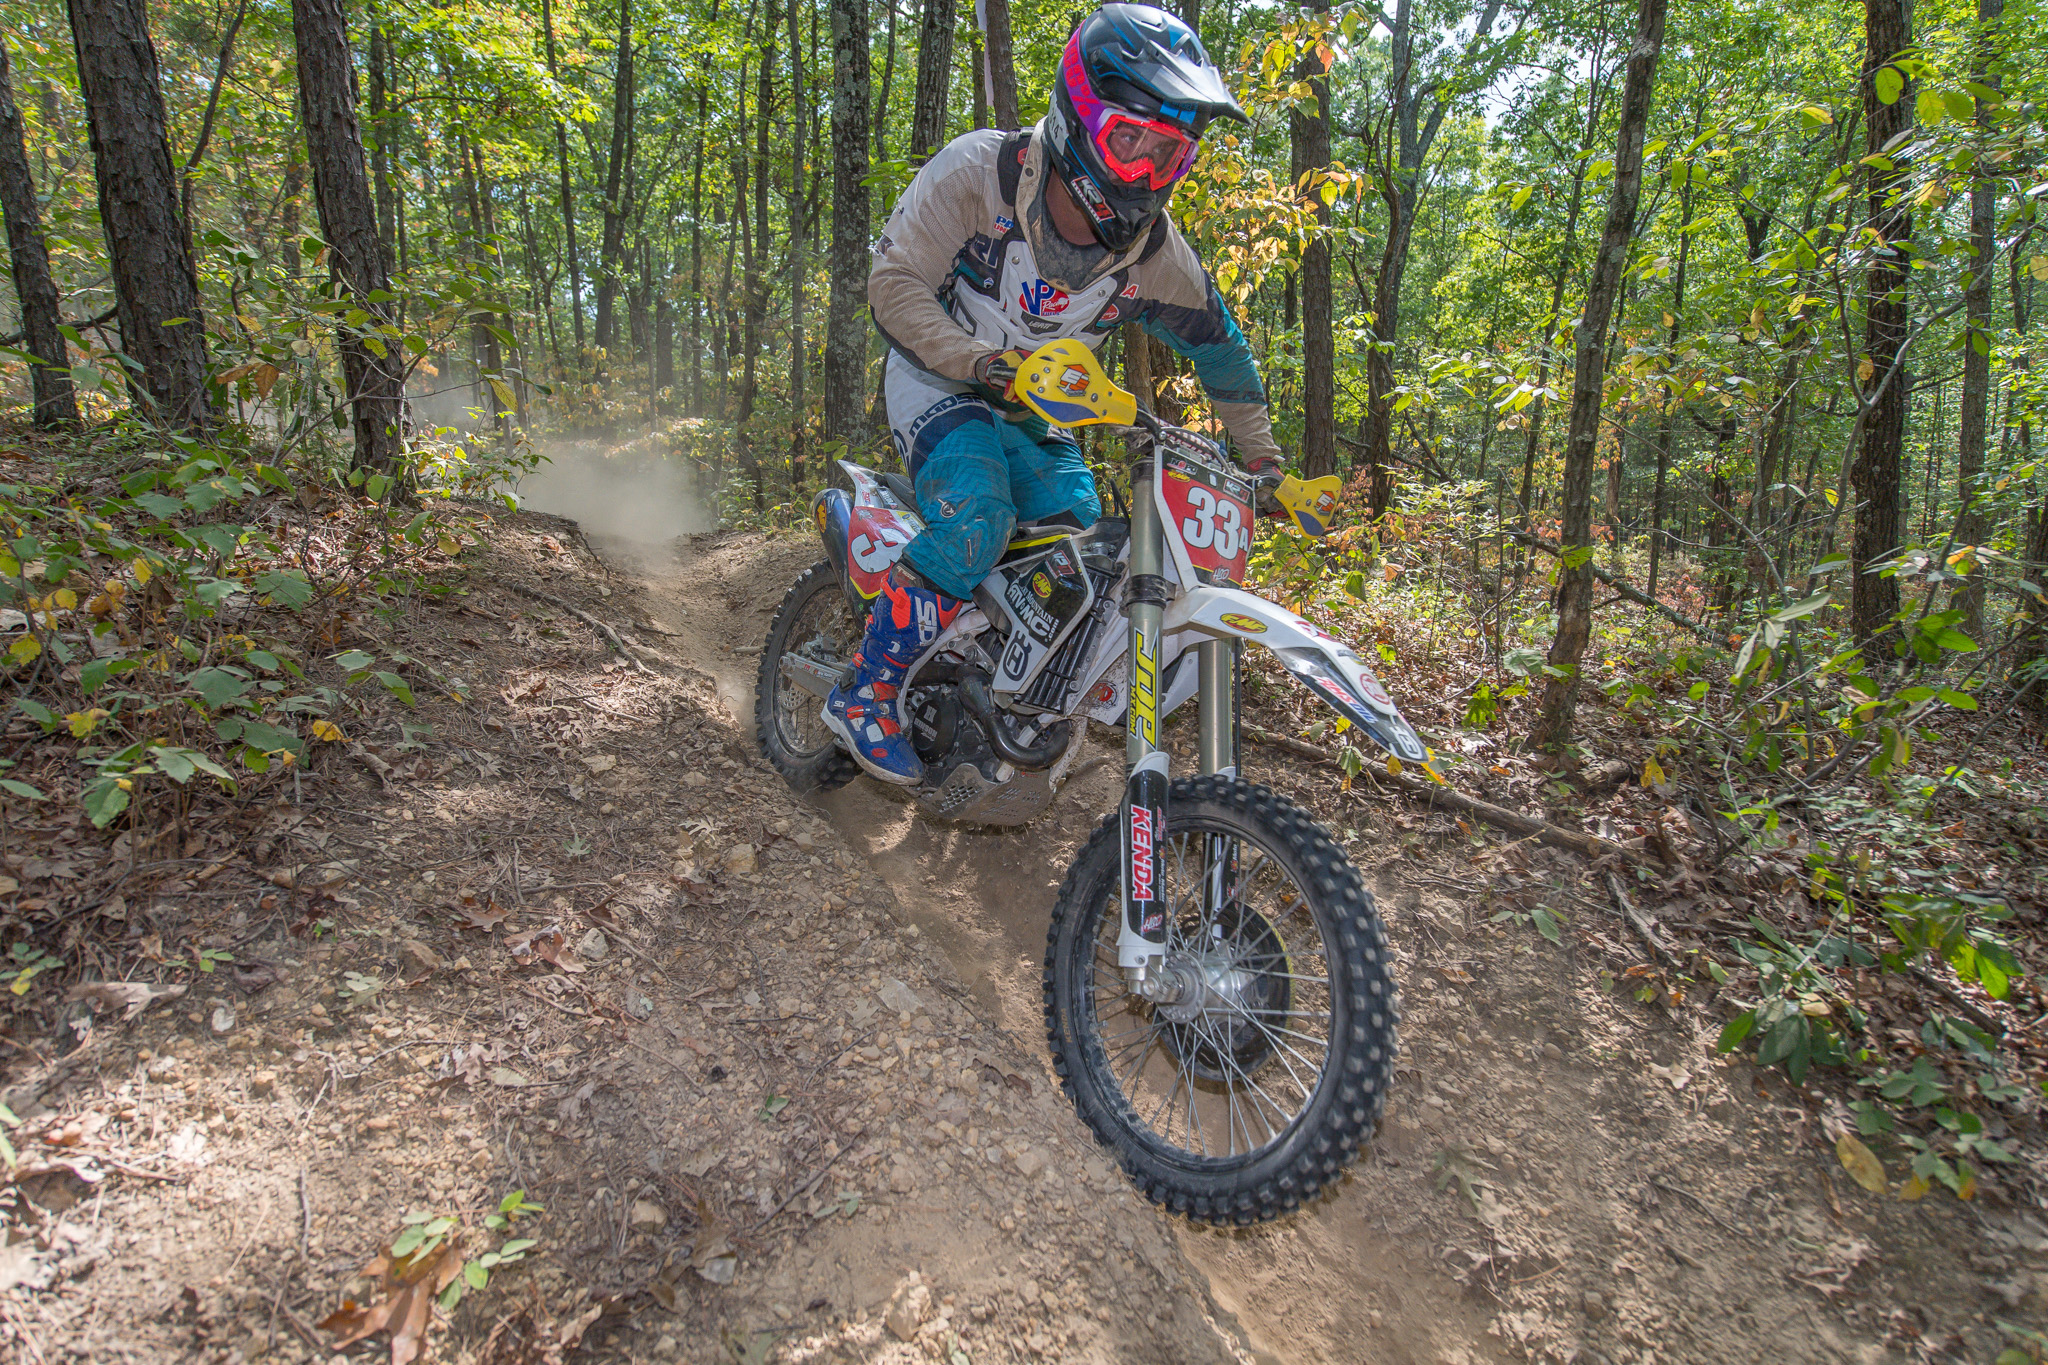 Grant Baylor had a successful weekend in Missouri, finishing second overall.Photo - Shan Moore